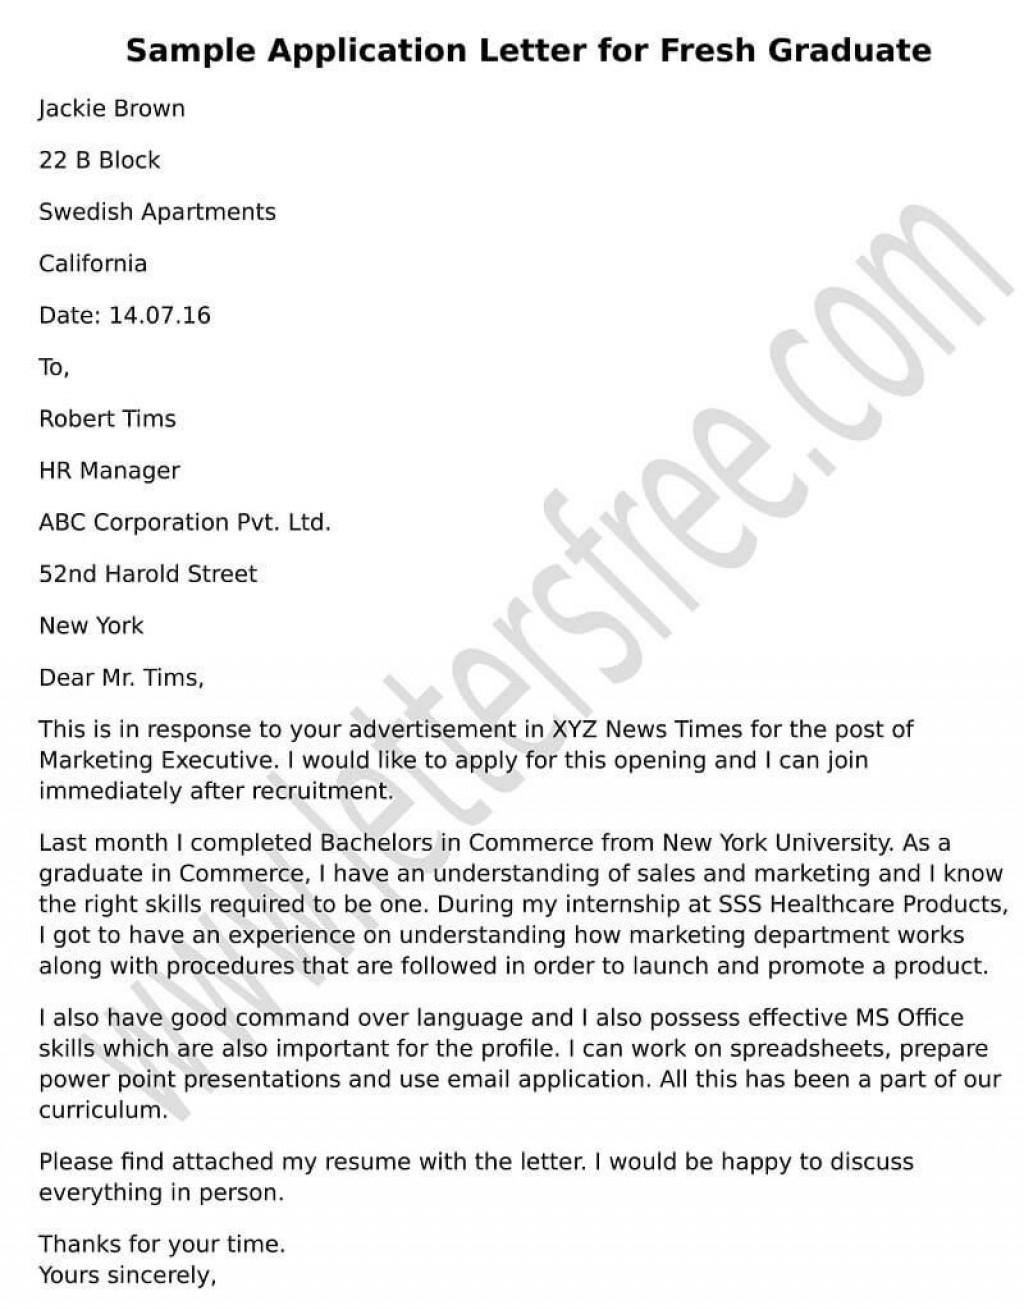 002 Wonderful Cover Letter Sample Template For Fresh Graduate In Marketing High Def Large